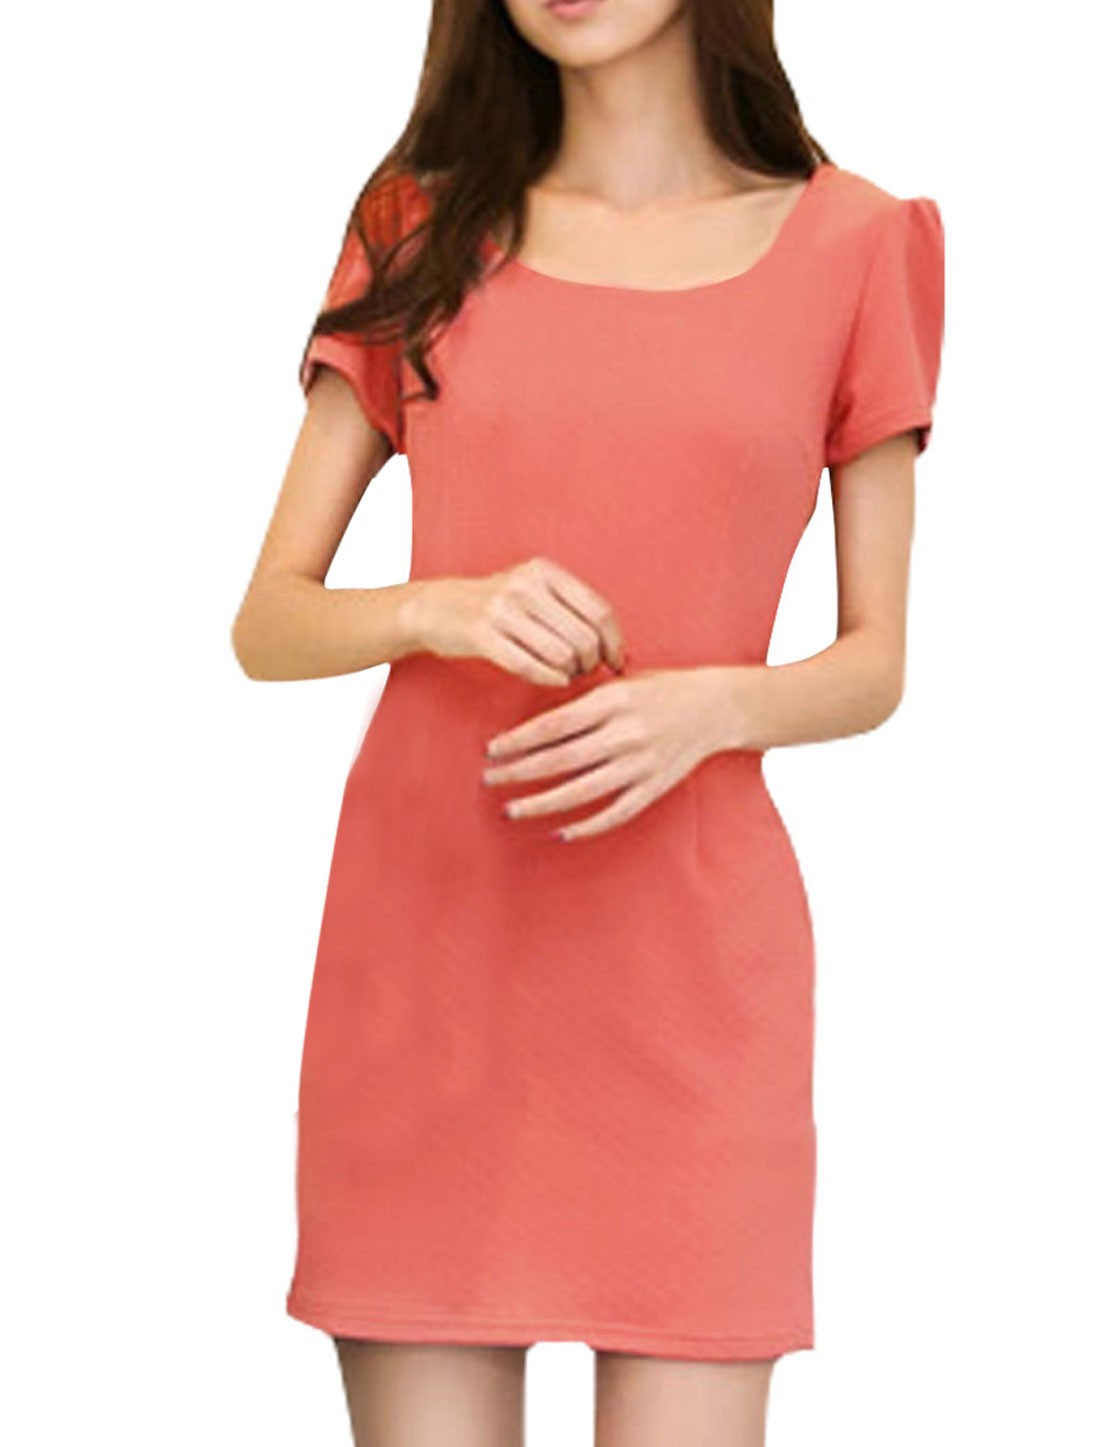 NEWS-Zip-Up-Back-Short-Sleeve-Casual-Dress-for-Women-Salmon-XS